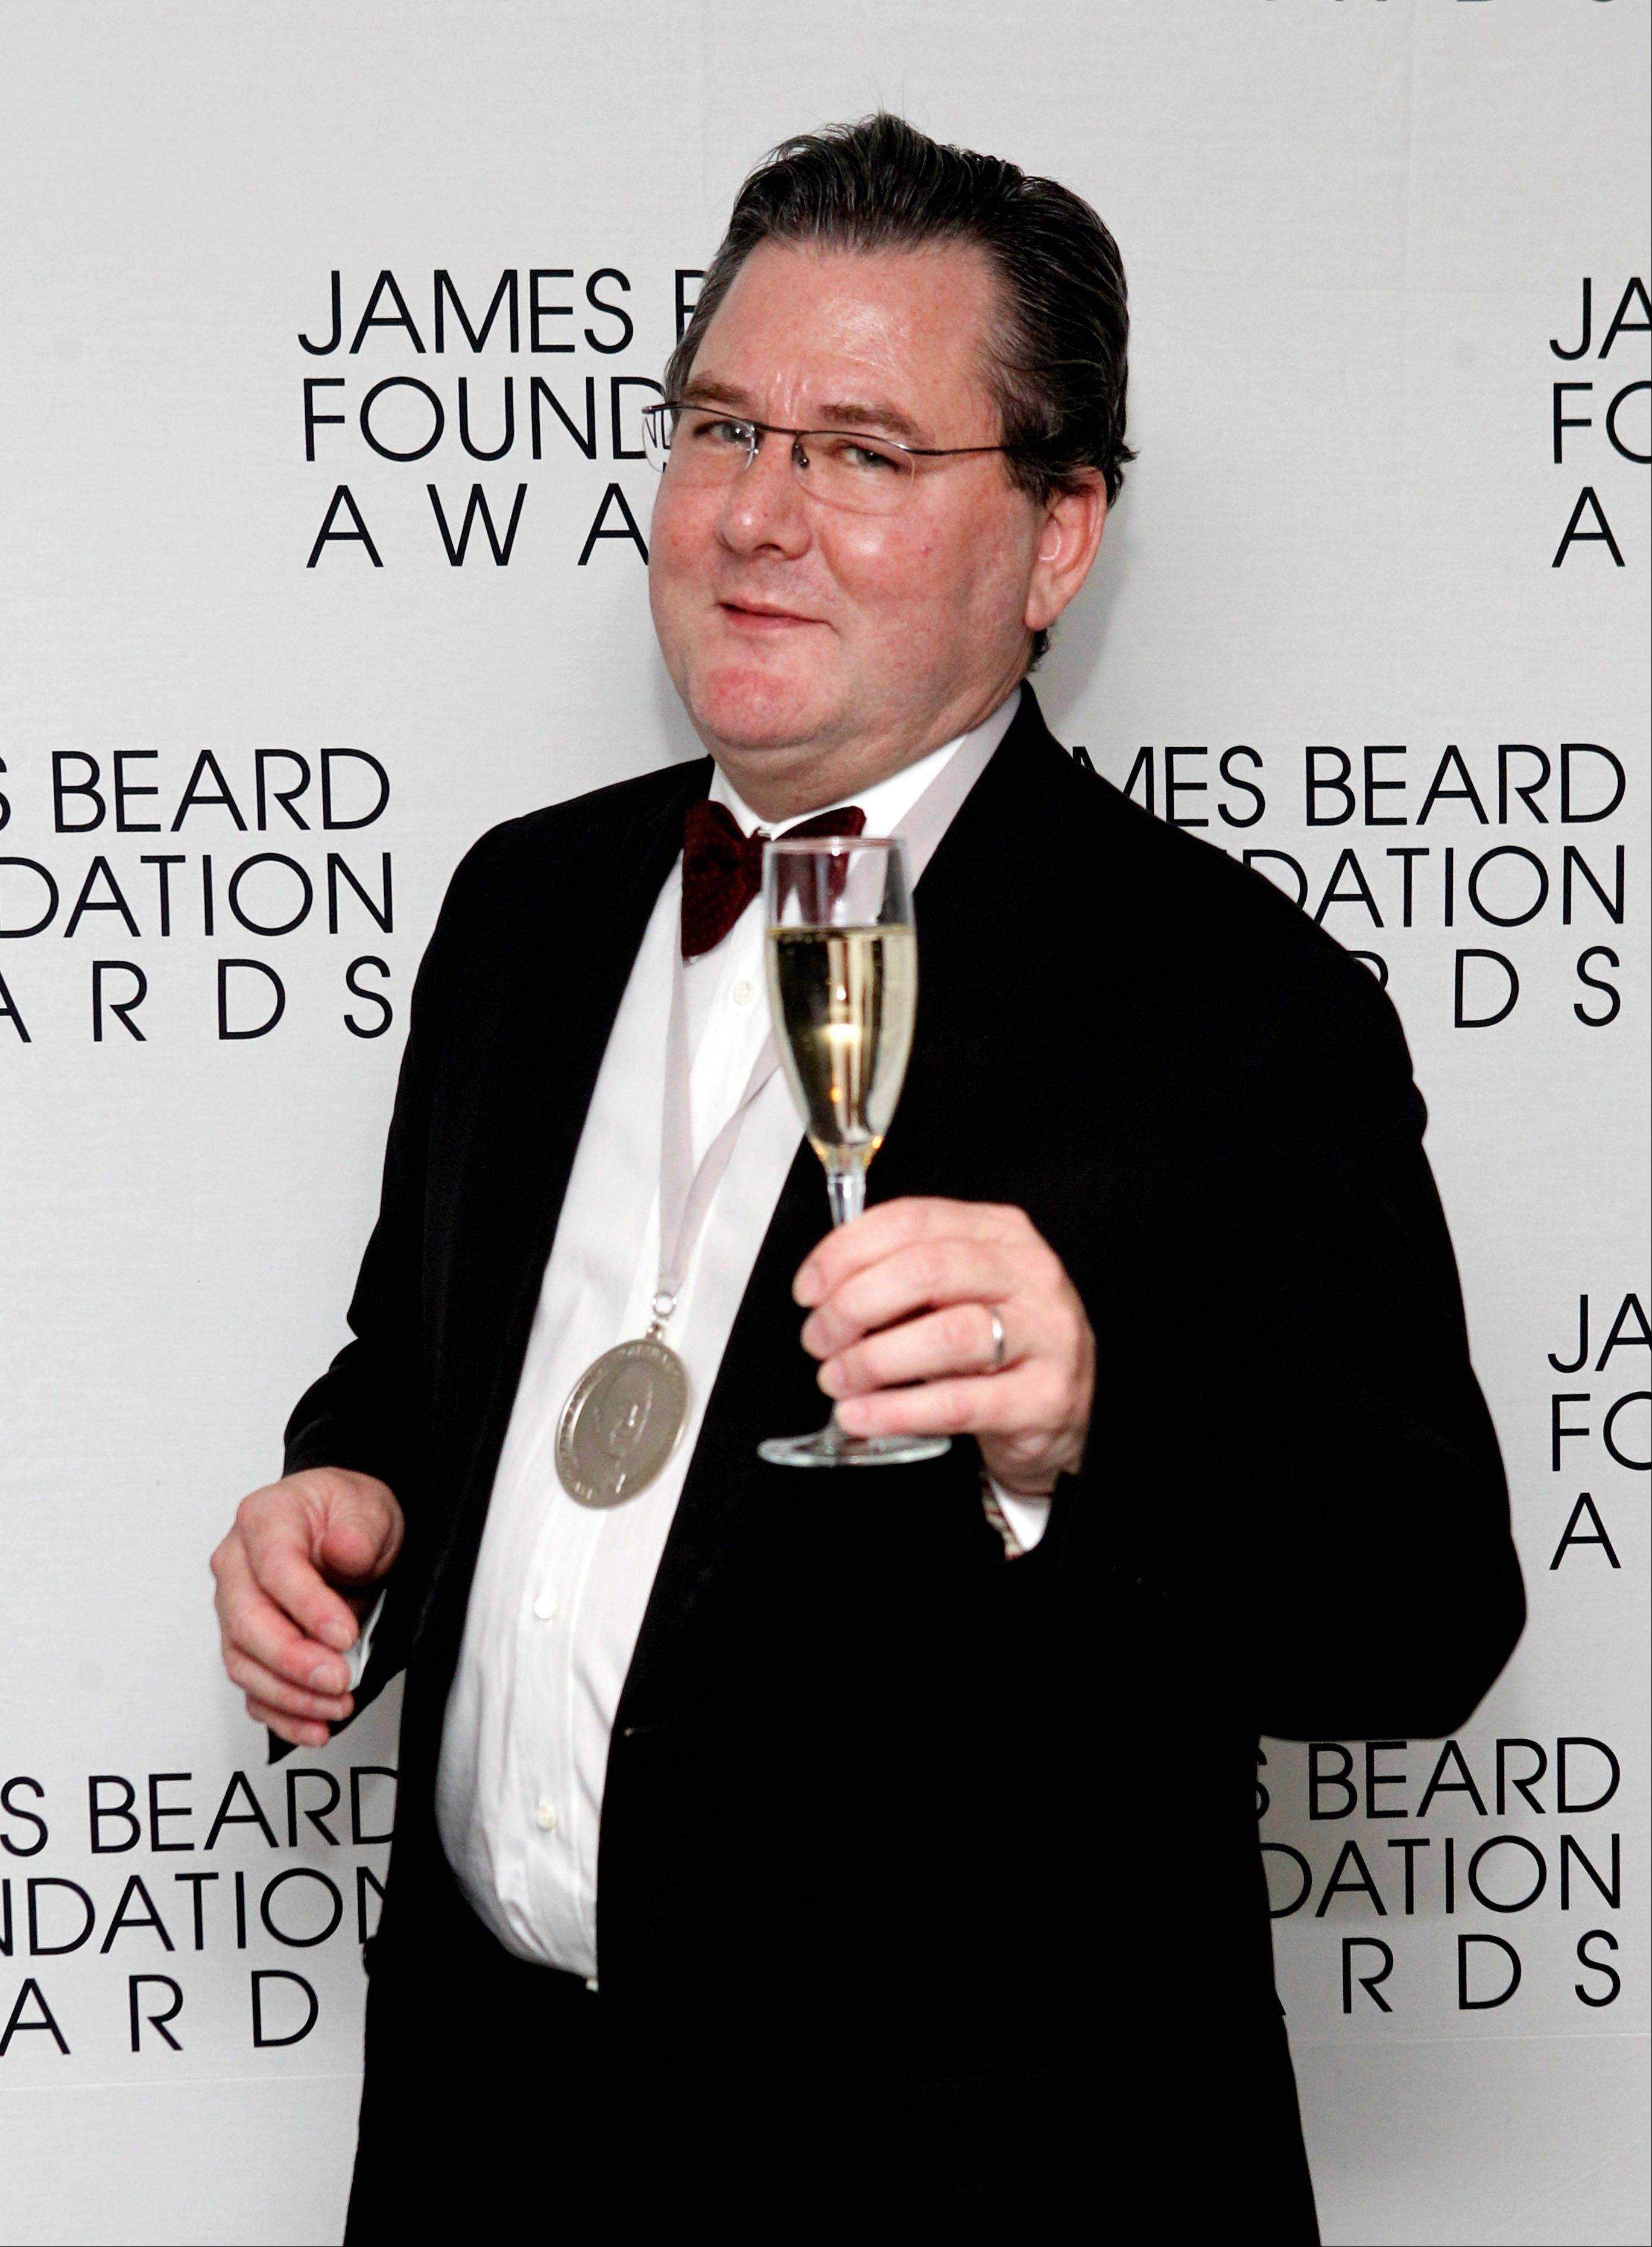 Chef Charlie Trotter poses with a glass of champagne after accepting his medal for Humanitarian of the Year during the James Beard Foundation Awards in New Yorkin May 2012. The award-winning chef died in November, a year after closing his eponymous Chicago restaurant that is credited with elevating the city's cuisine and providing a training ground for some of the nation's other best chefs.